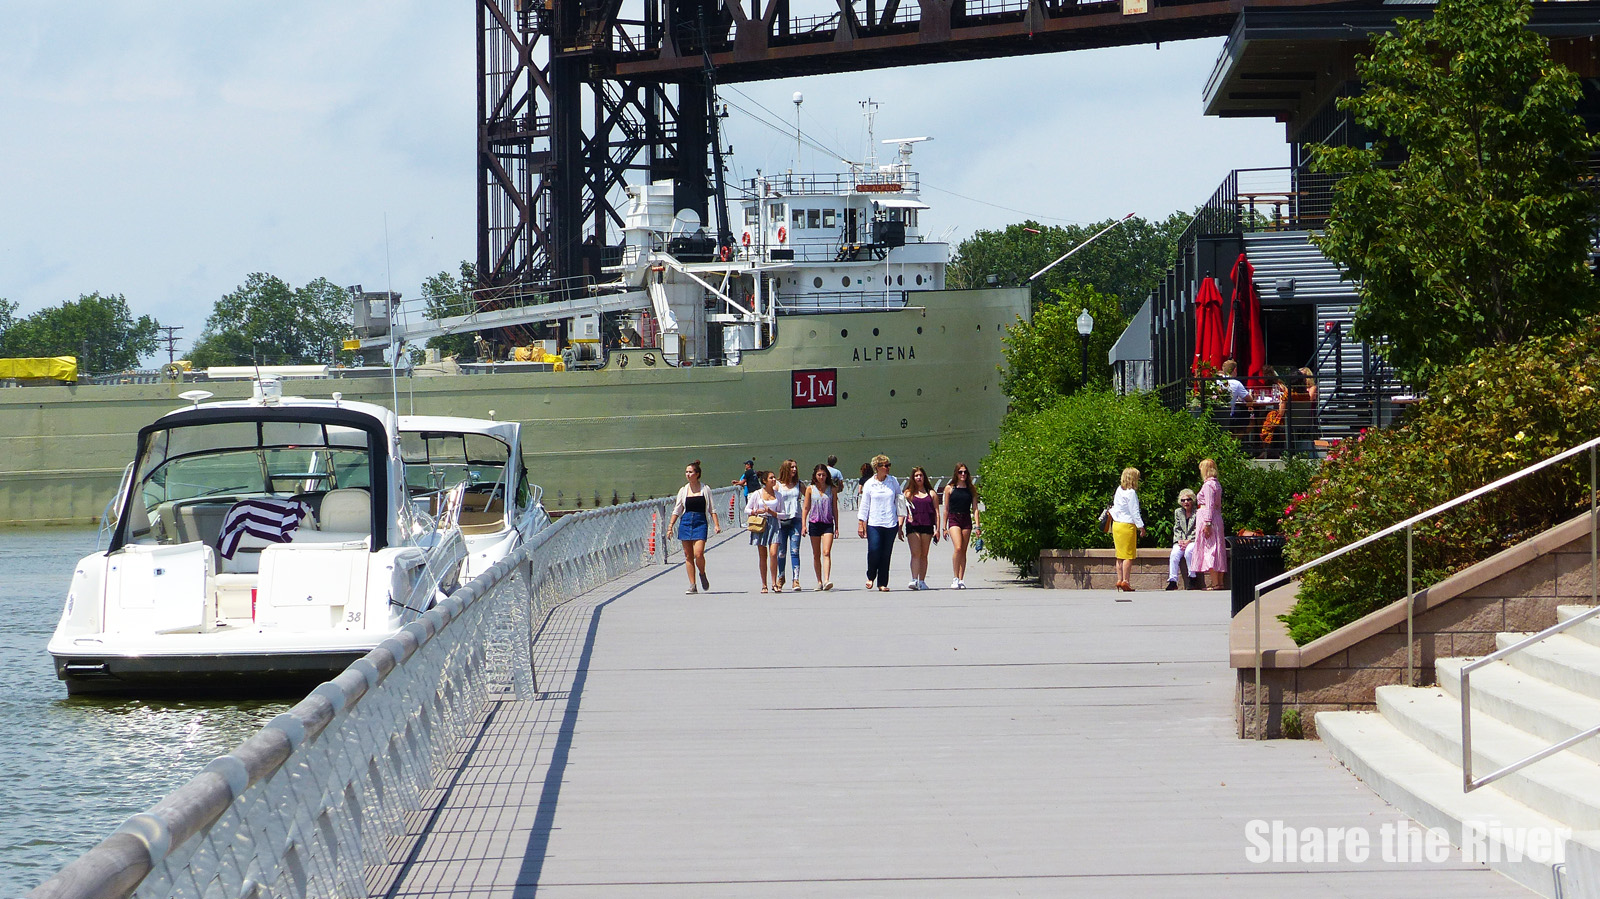 Alpena_Alley Cat_Boardwalk_P1520100 copy.jpg